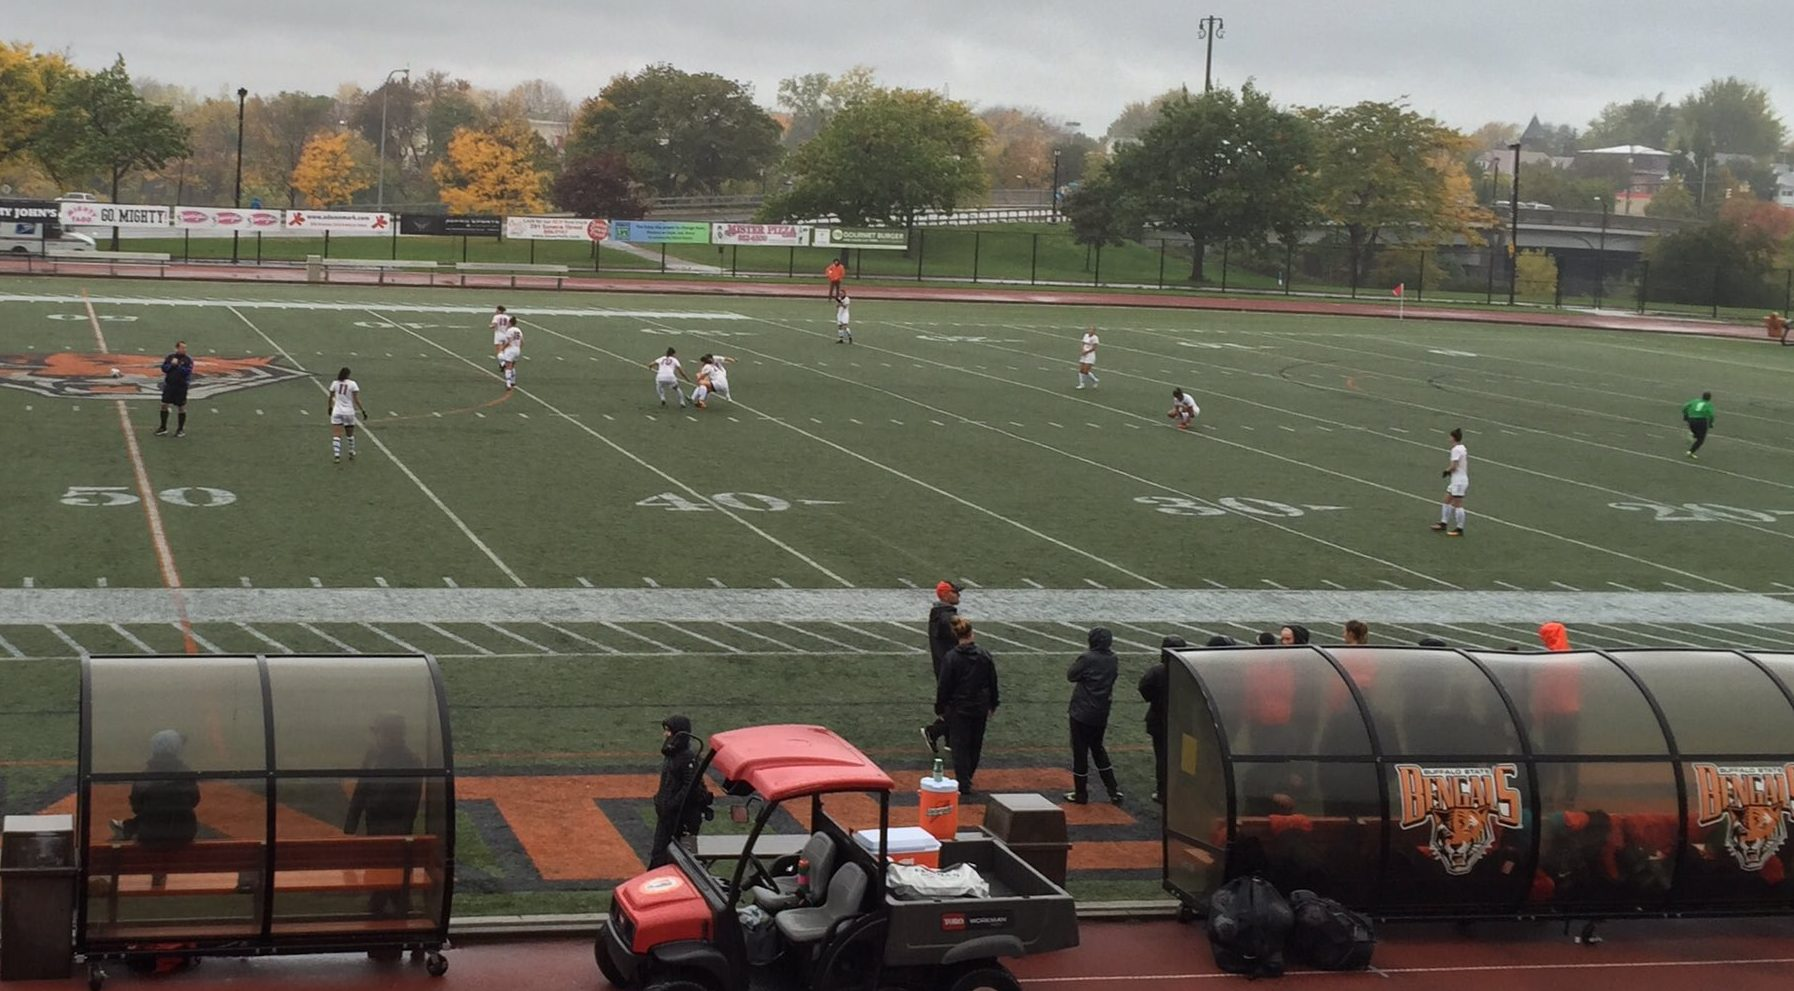 The Buffalo State women's soccer team takes the field against Oneonta on a rainy, windy and chilly day. (Ben Tsujimoto/Buffalo News)